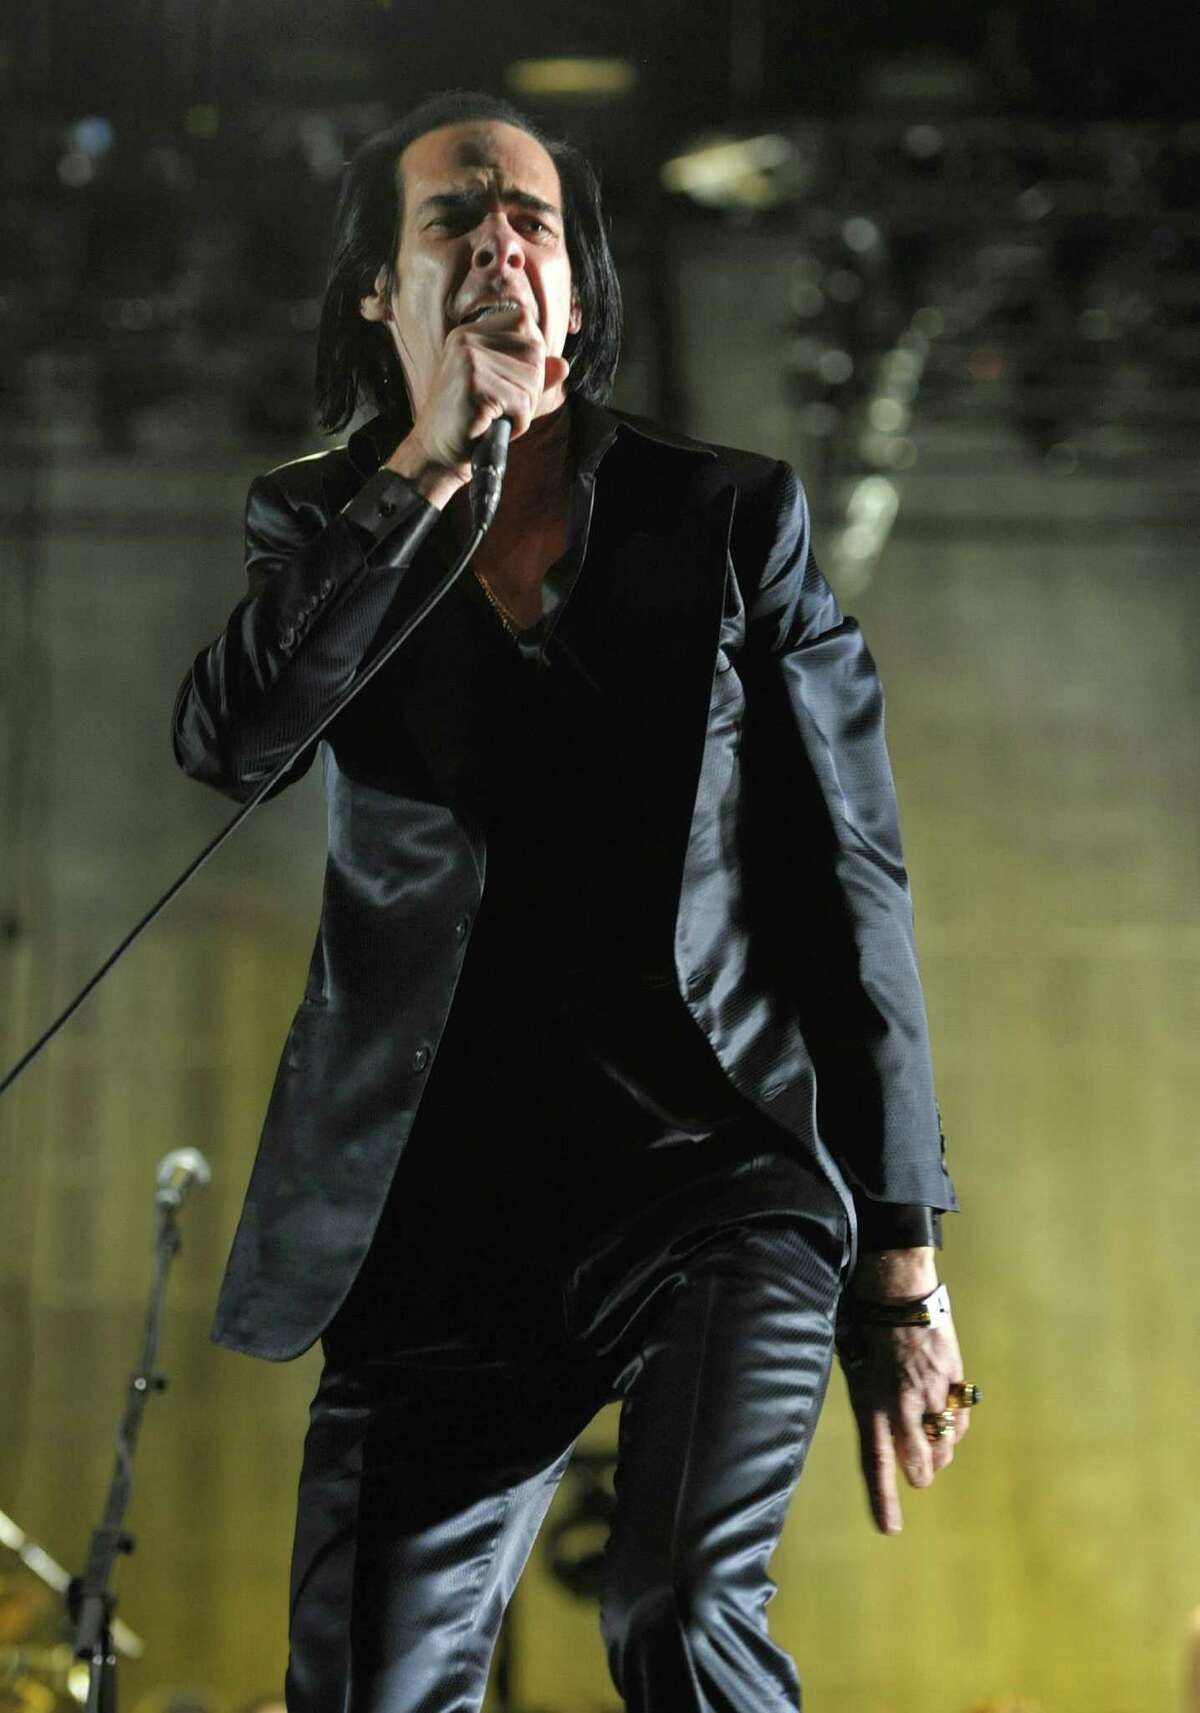 Nick Cave performs with the Bad Seeds during the second weekend of the 2013 Coachella Valley Music and Arts Festival at the Empire Polo Club on Sunday, April 21, 2013 in Indio, Calif. (Photo by John Shearer/Invision/AP)